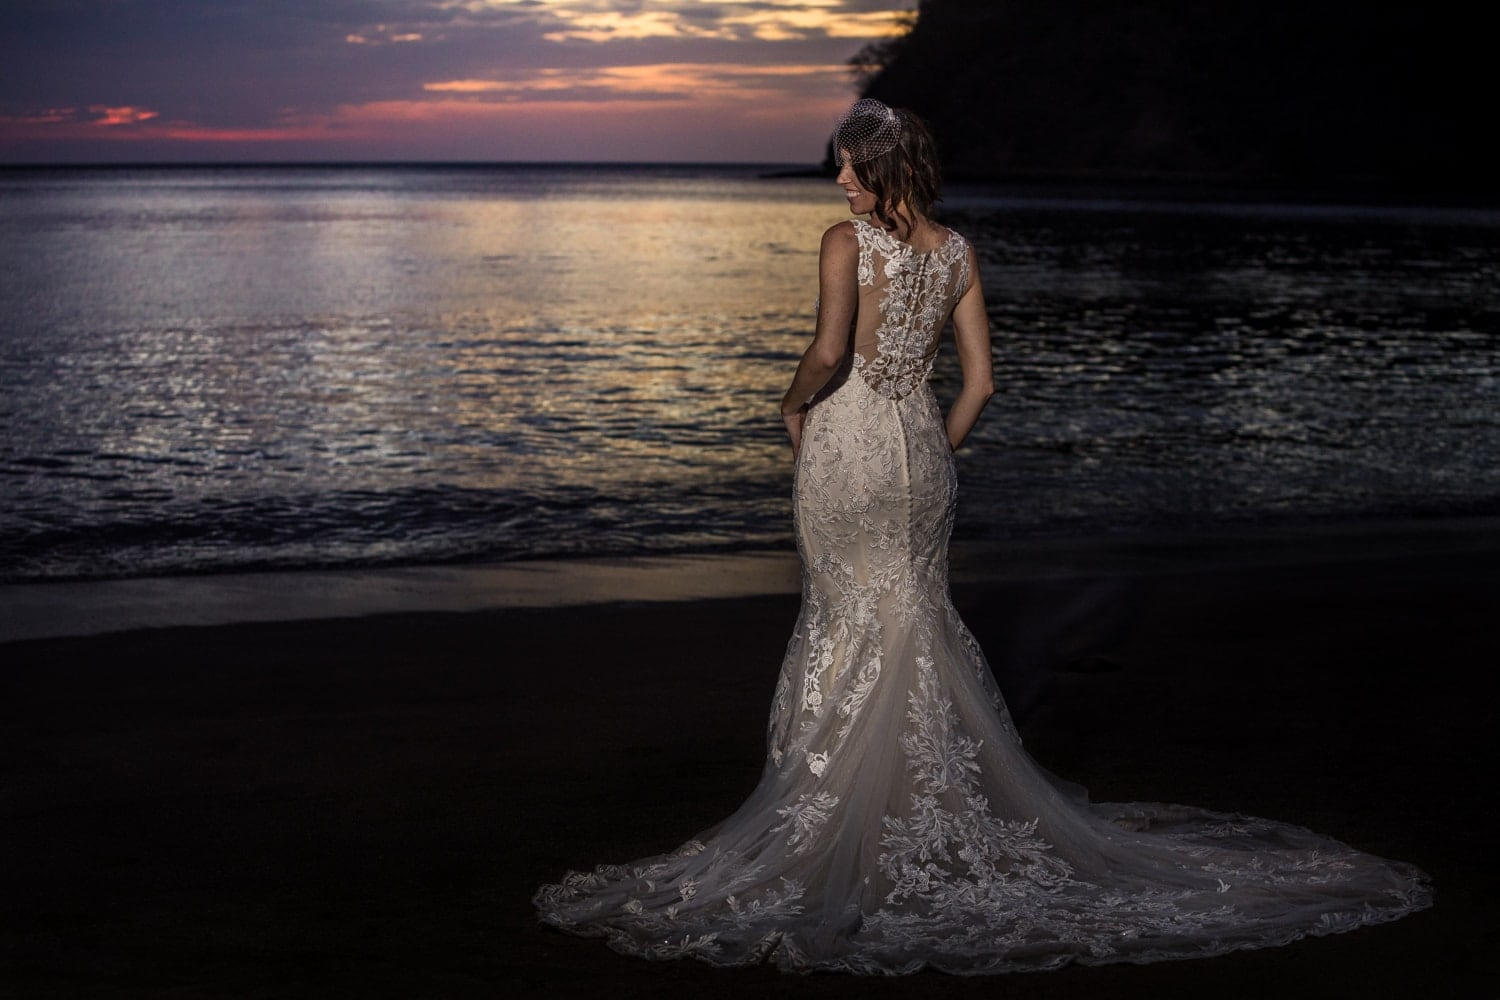 Amanda-Wayne-beach-wedding-photos-Dreams-Las-Mareas-Resort-Costa-Rica-3.jpg